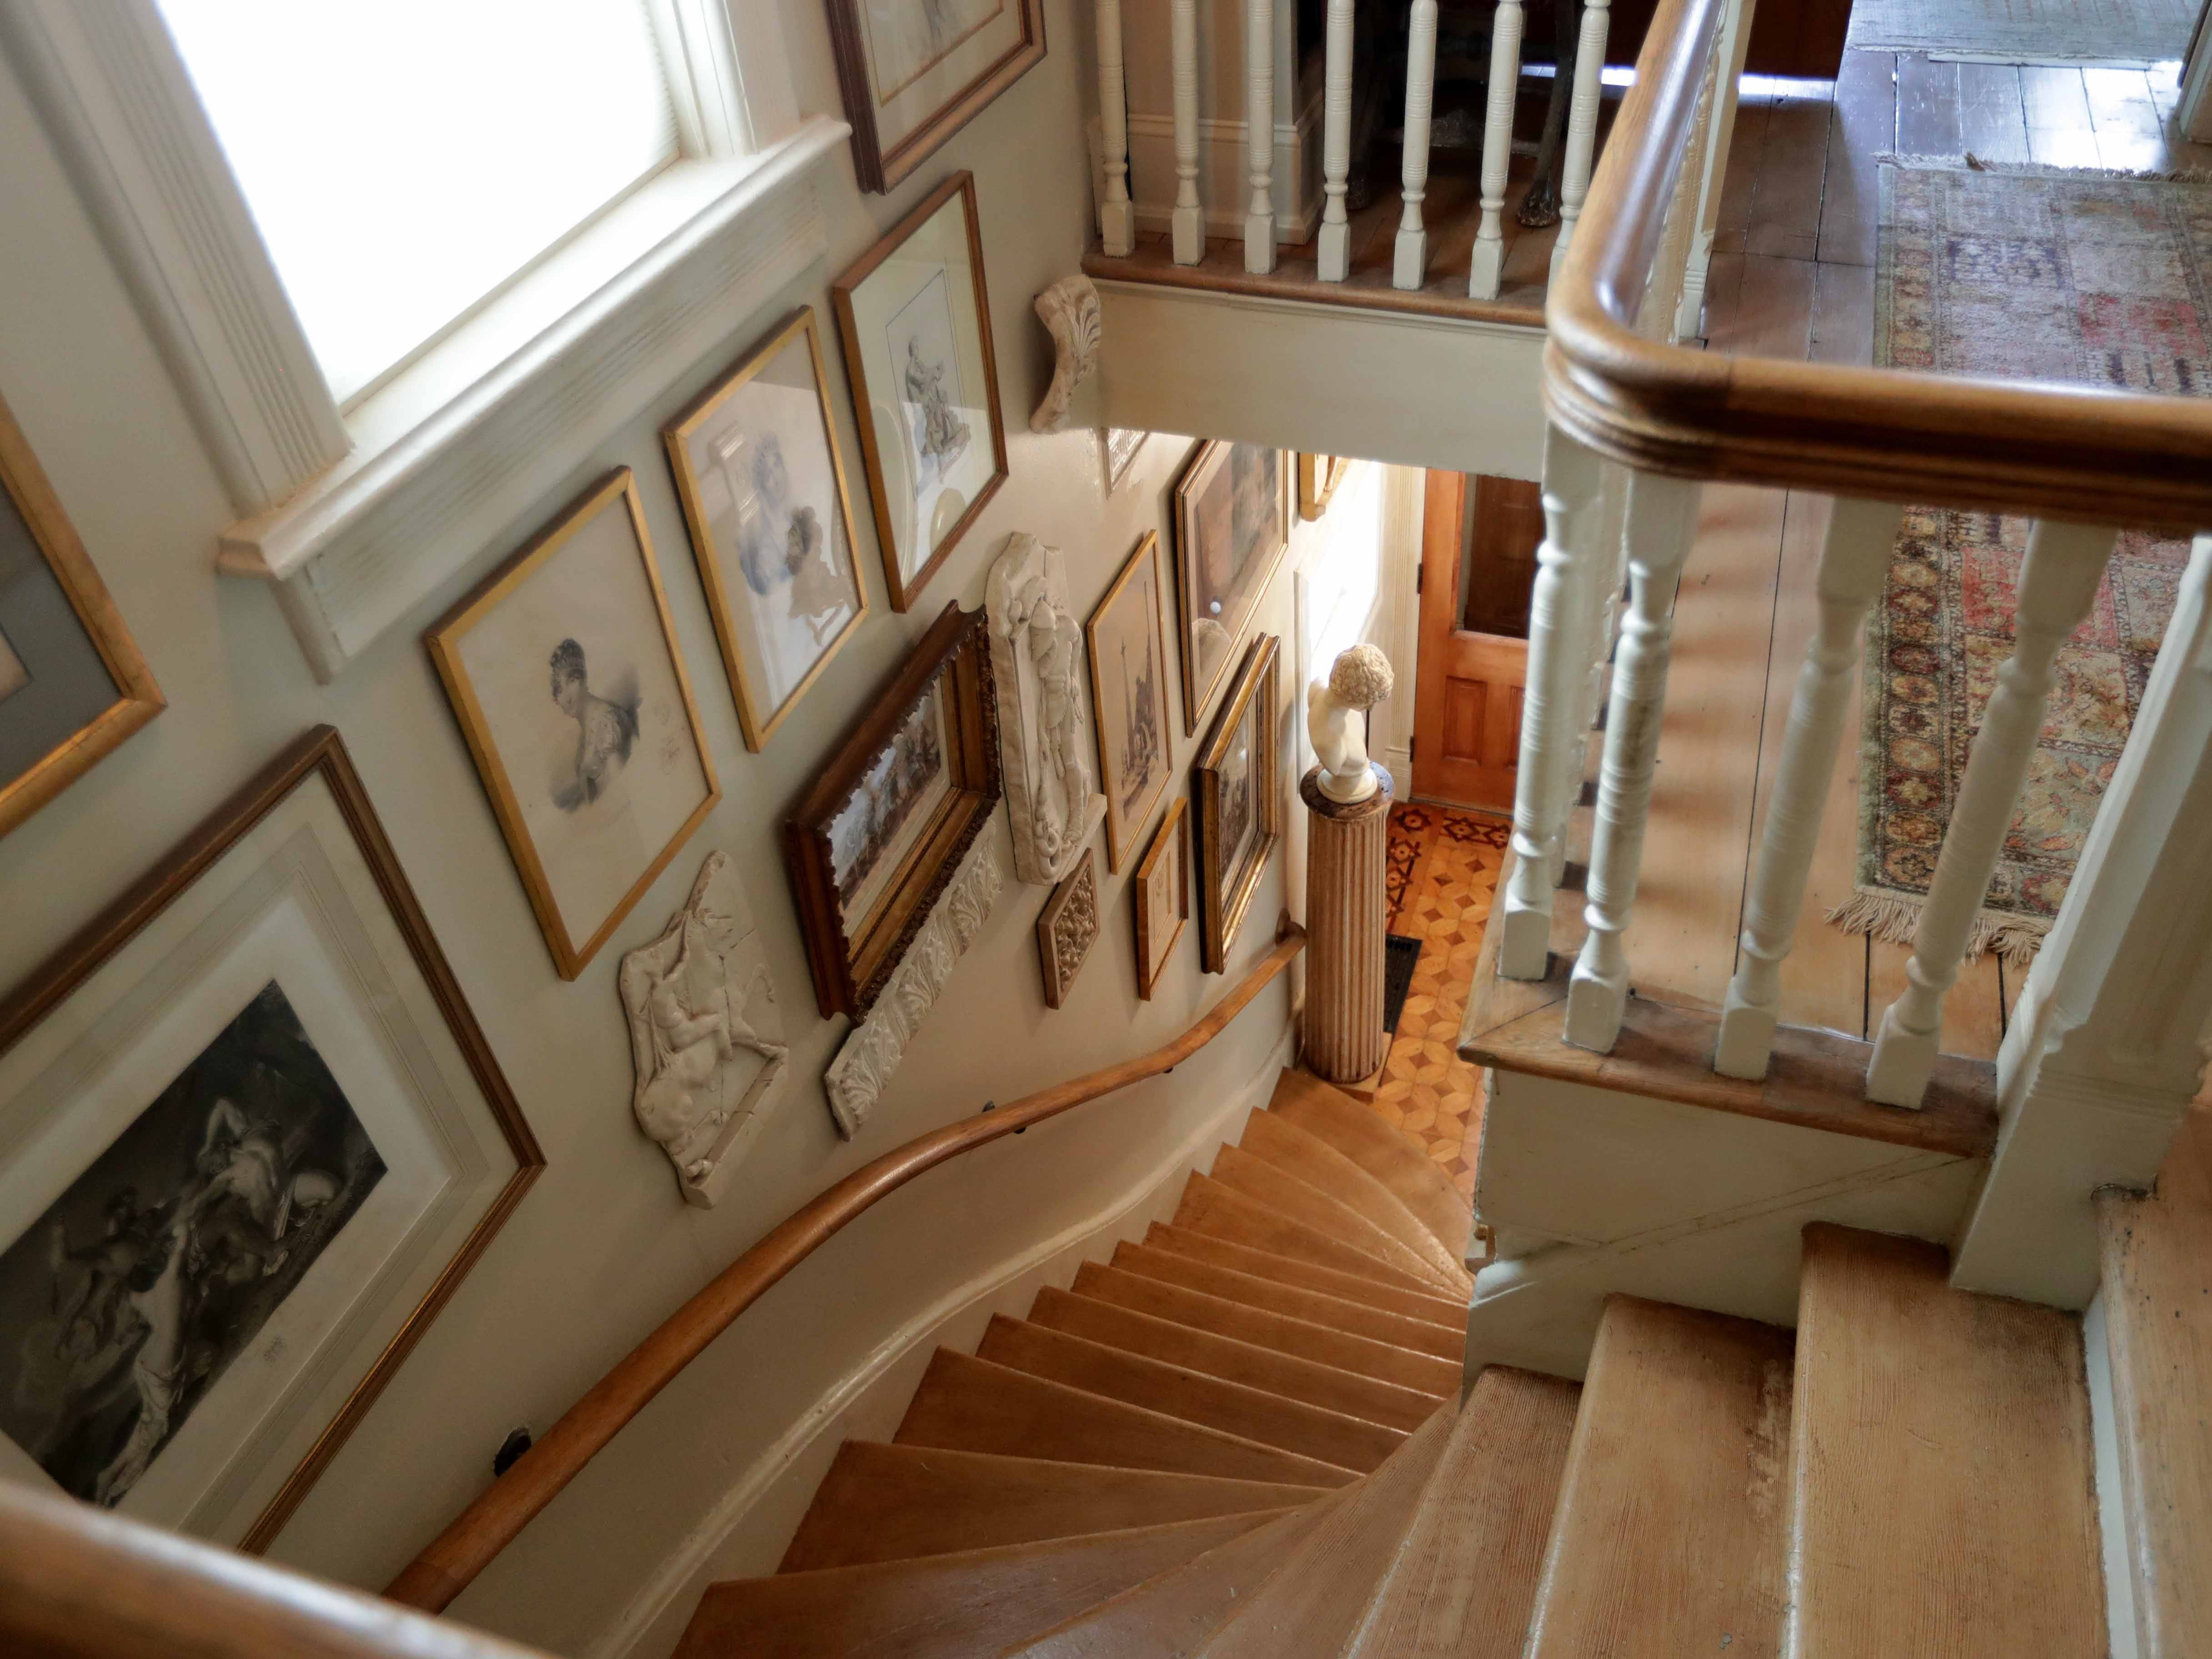 A curved wooded staircase leading to the second floor is loaded with art.